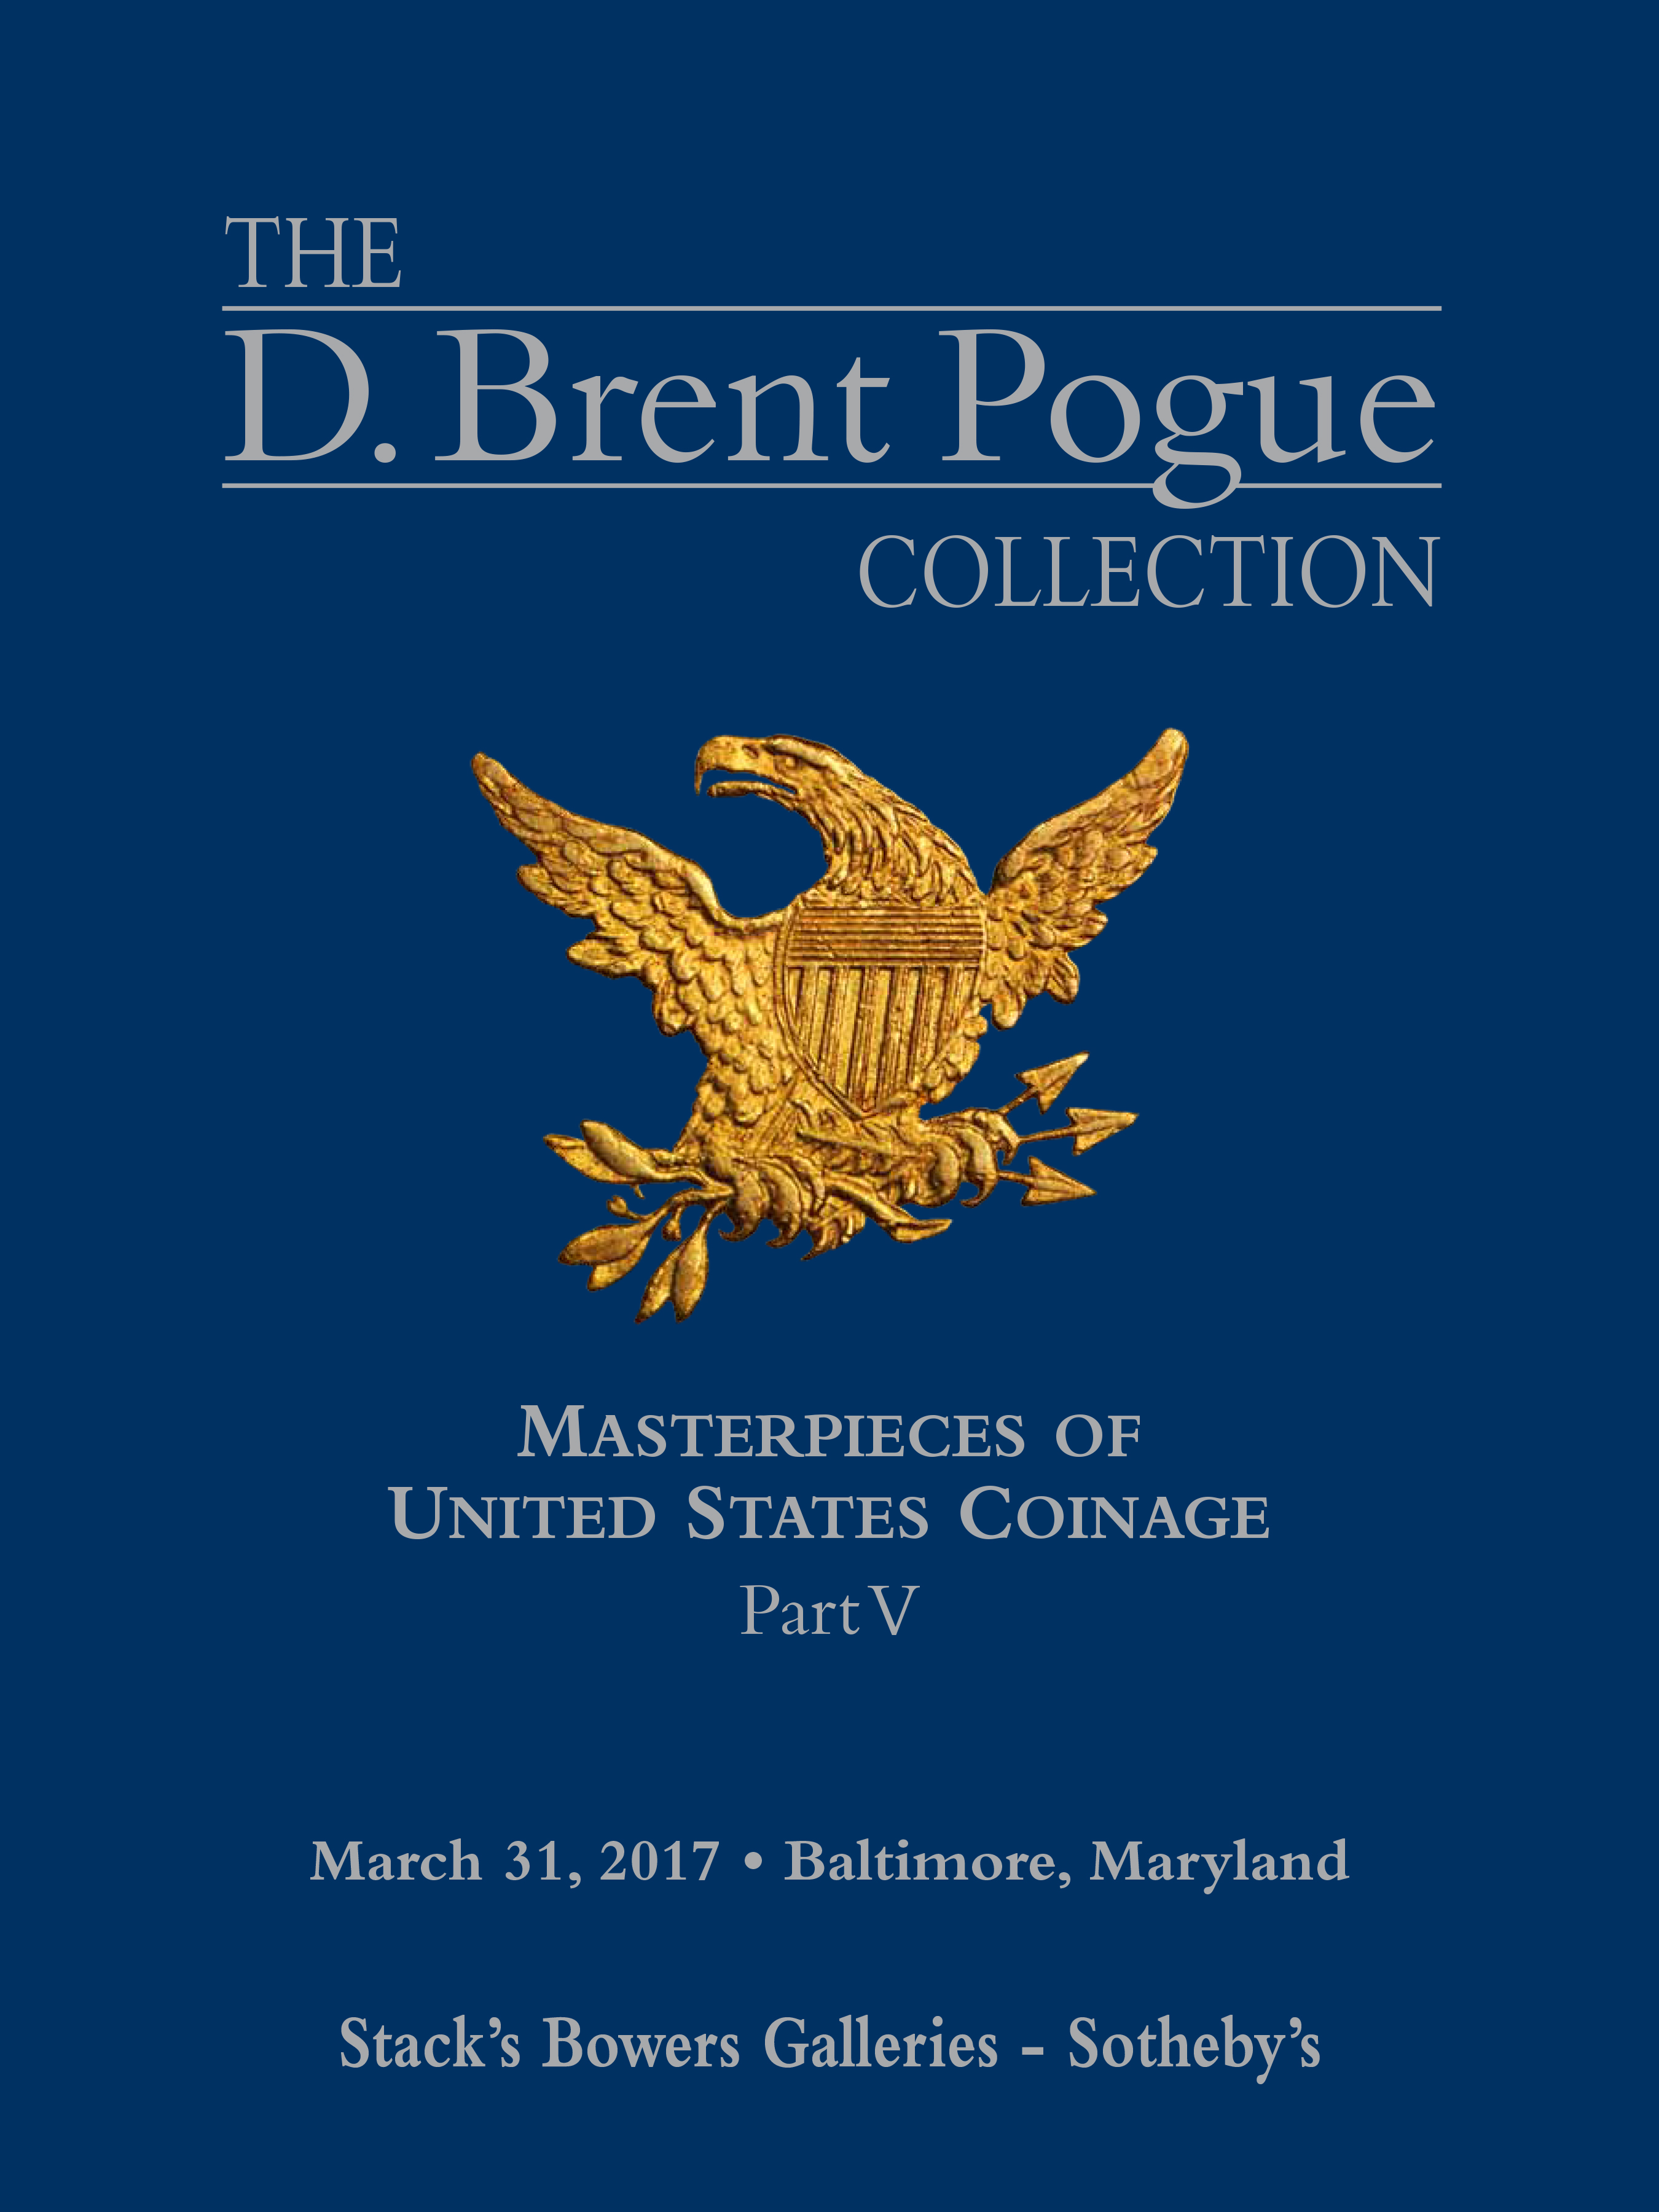 The D. Brent Pogue Collection, Masterpieces of United States Coinage, Part V